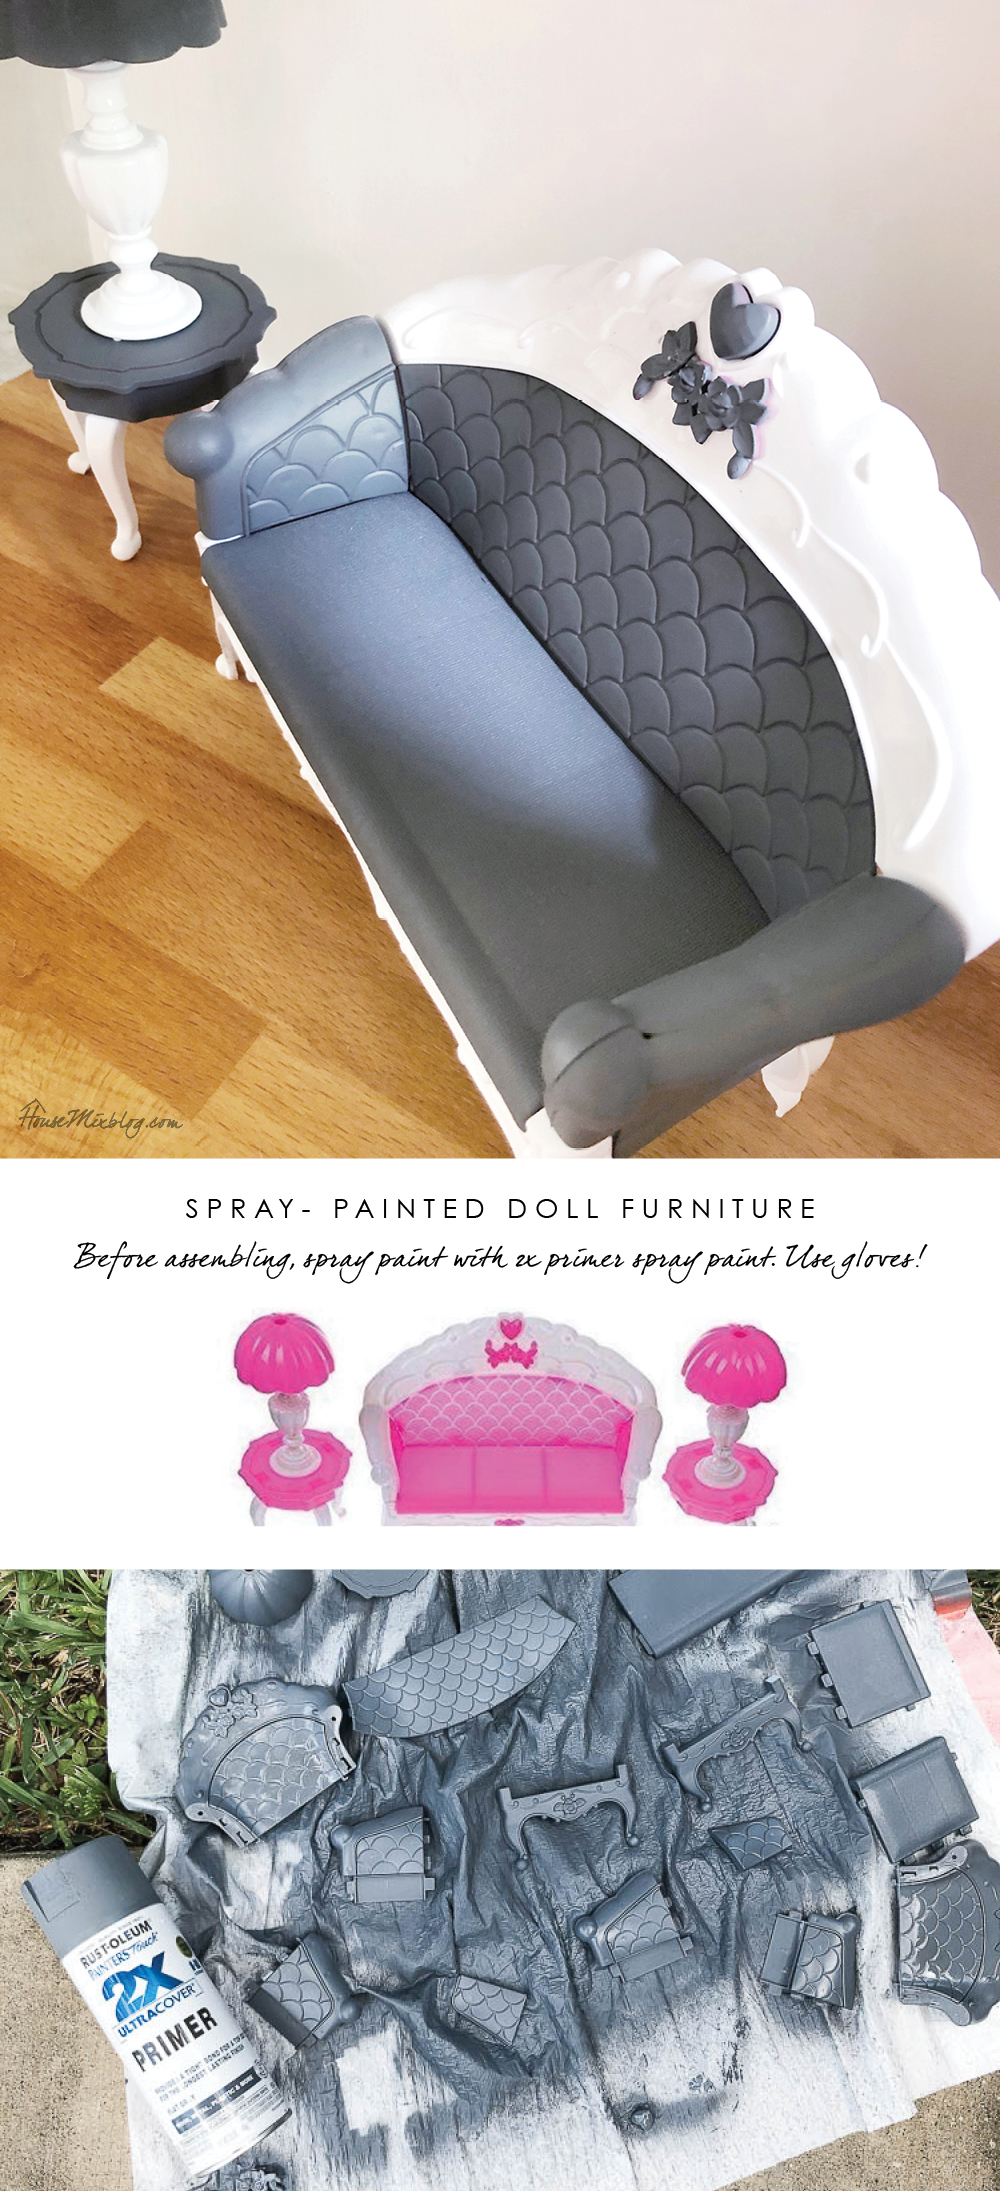 Barbie DIY furniture hacks - spray paint cheap doll furniture with this paint